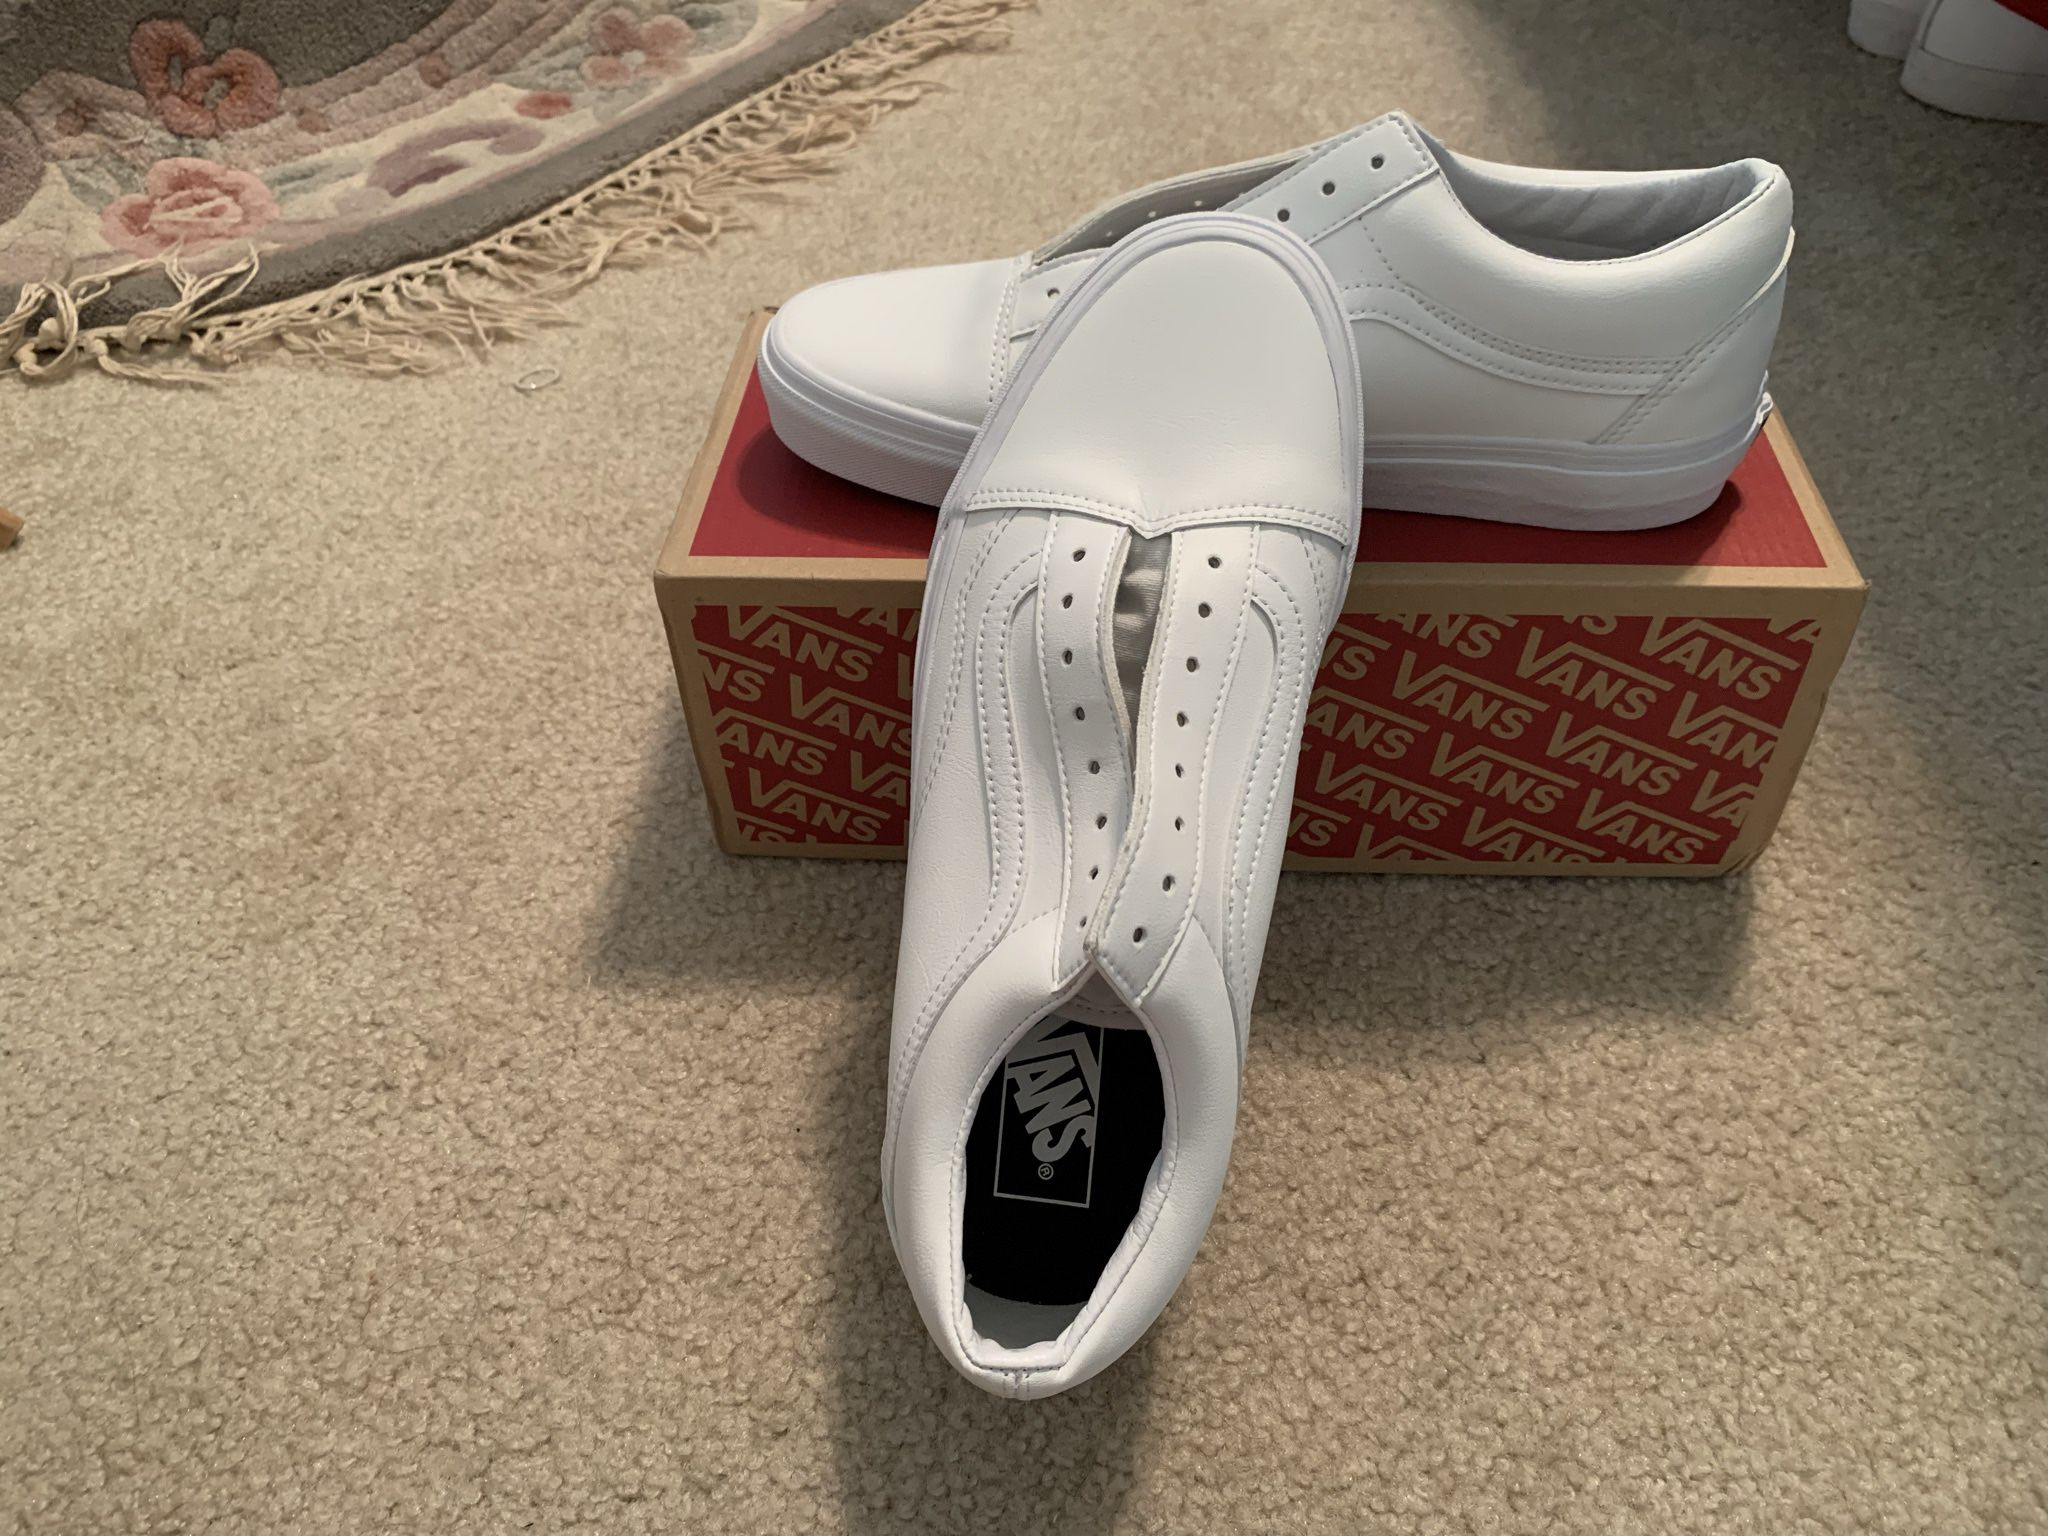 Vans White Leather Lows